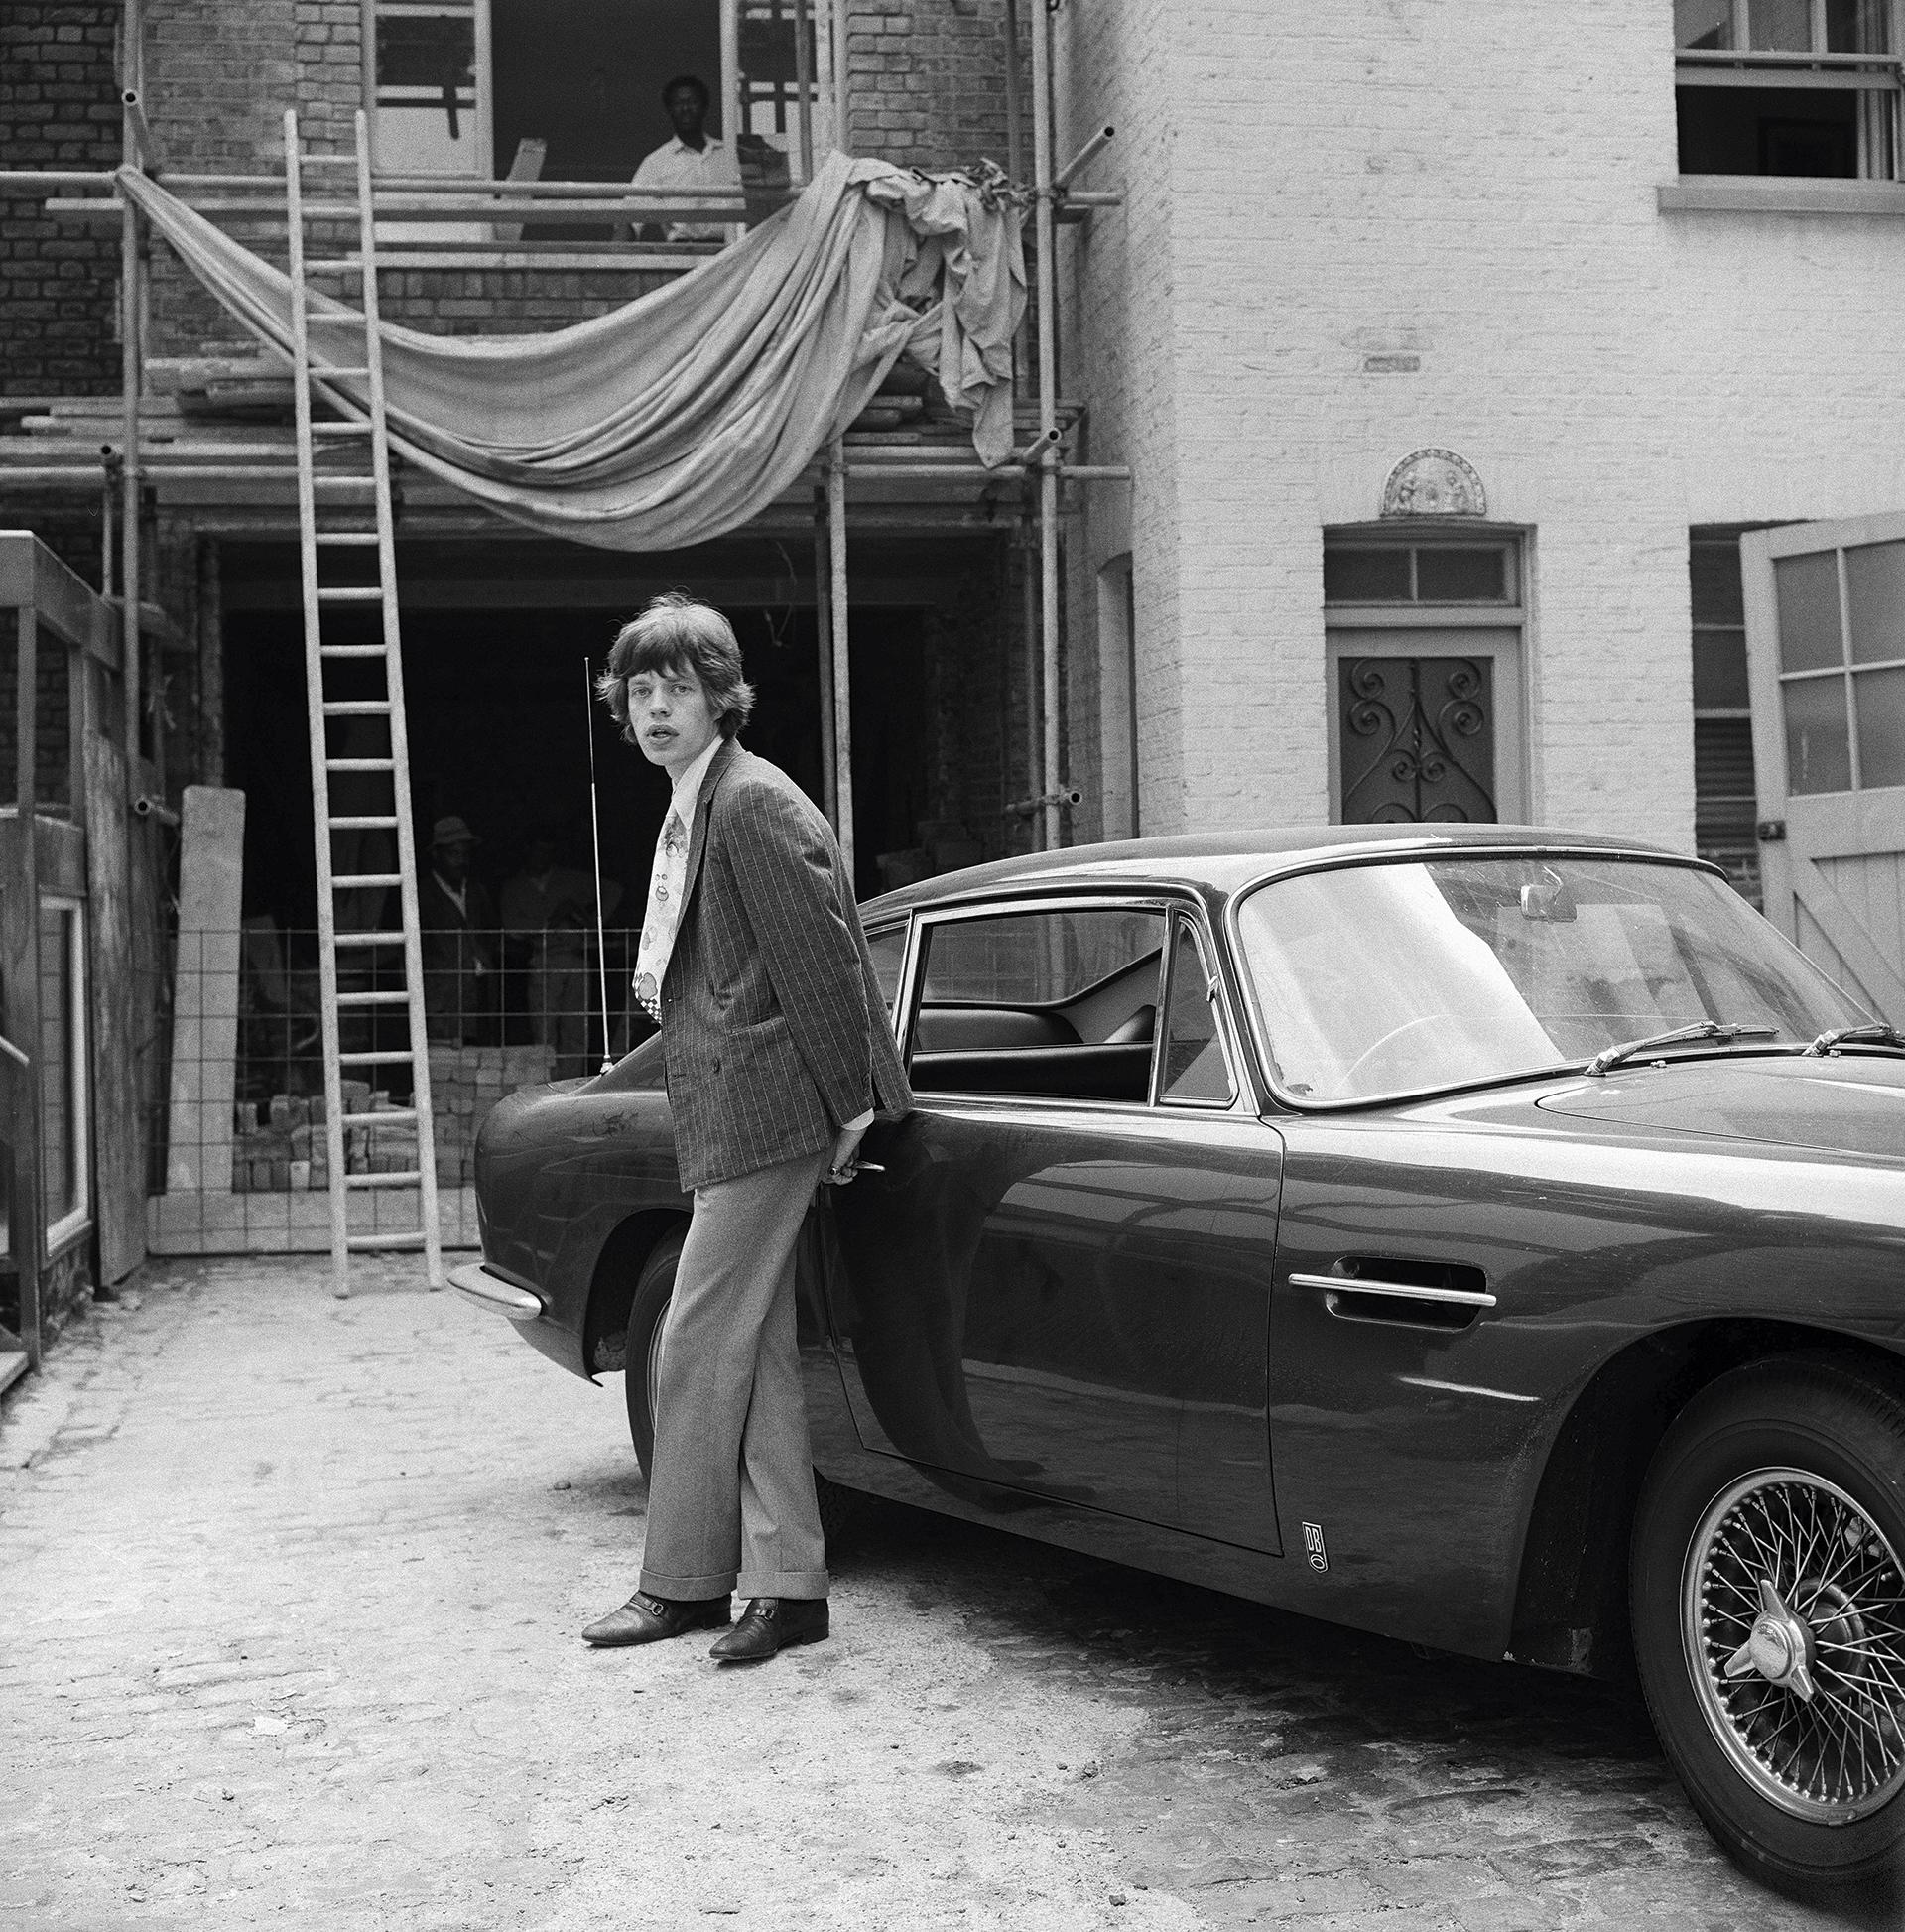 Mick Jagger at Chrissie Shrimpton's Baker Street Mews House